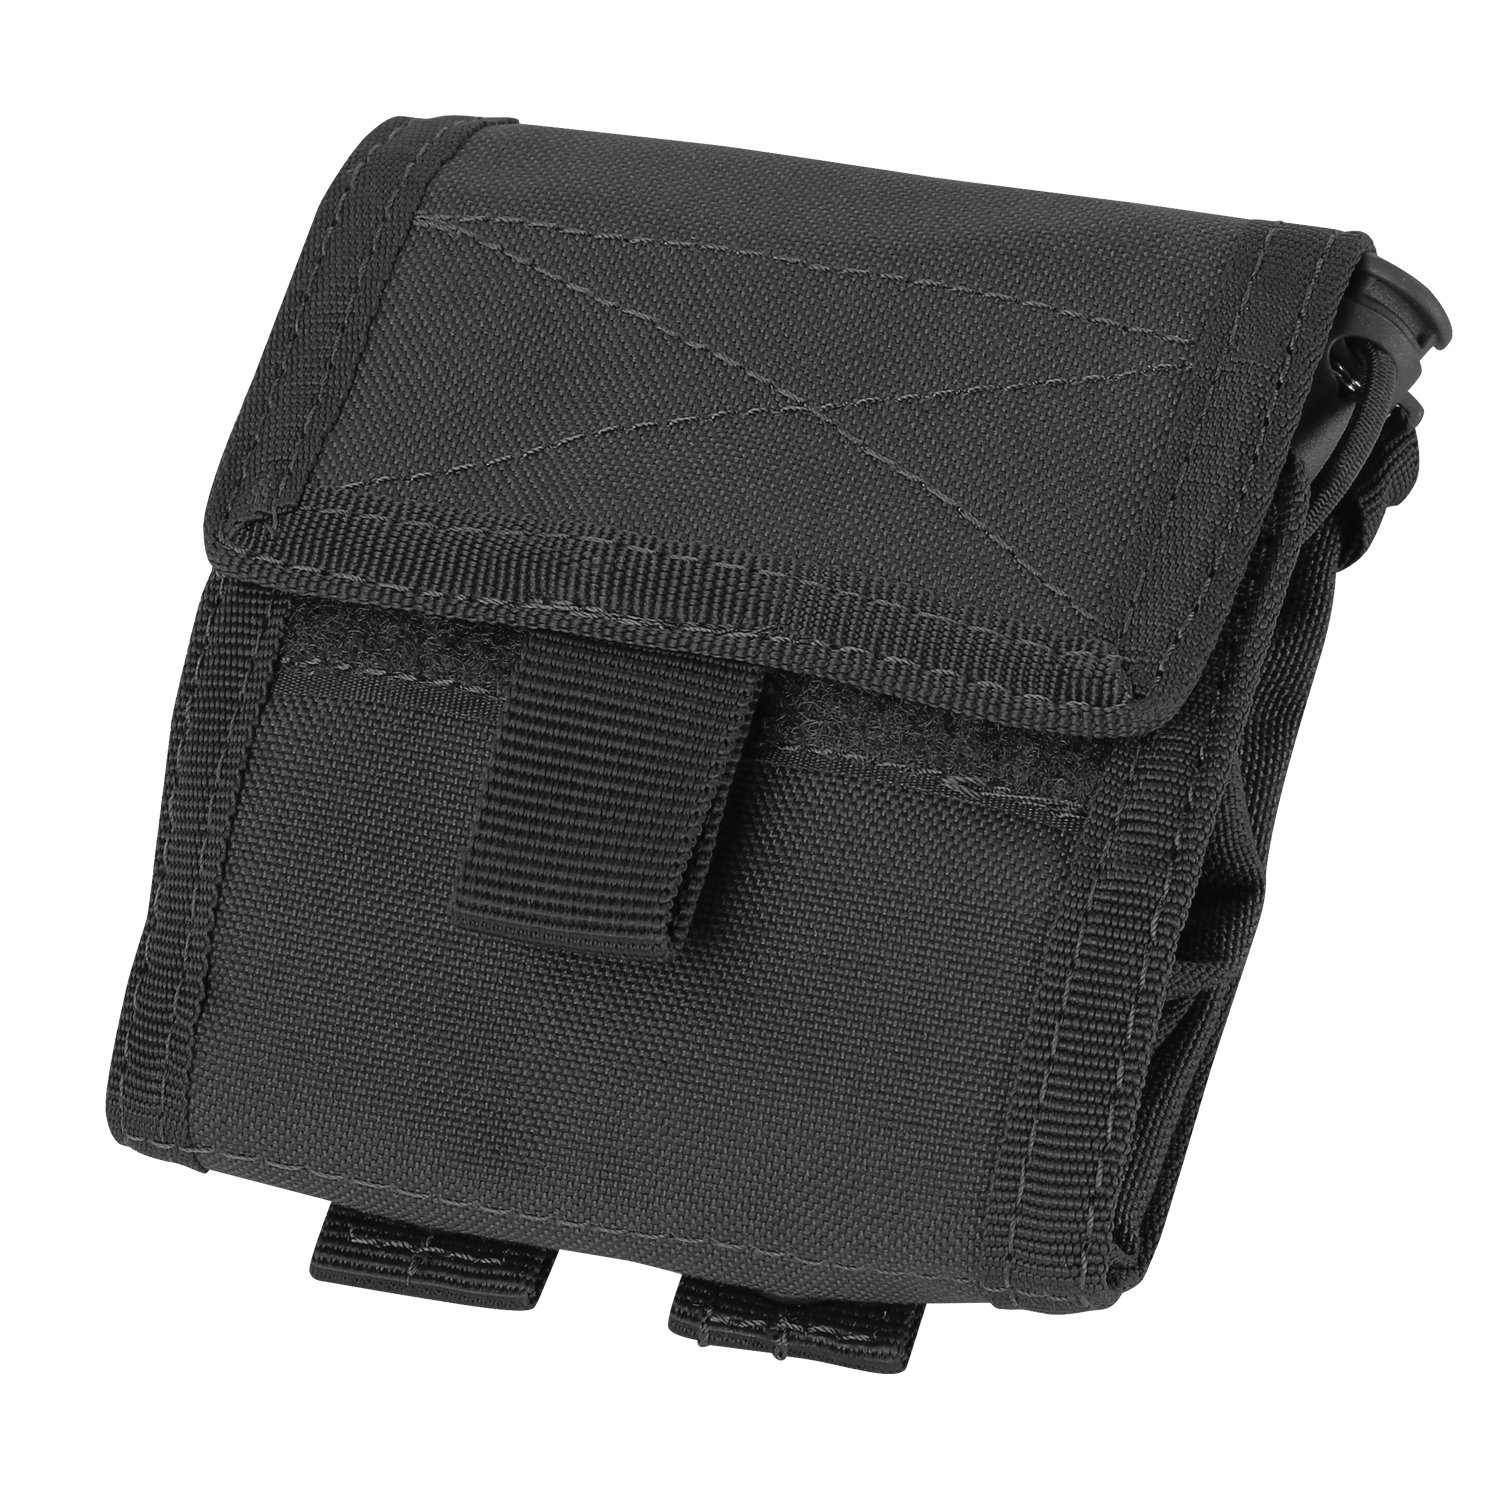 CONDOR MA36-002 Roll - Up Utility Pouch Black